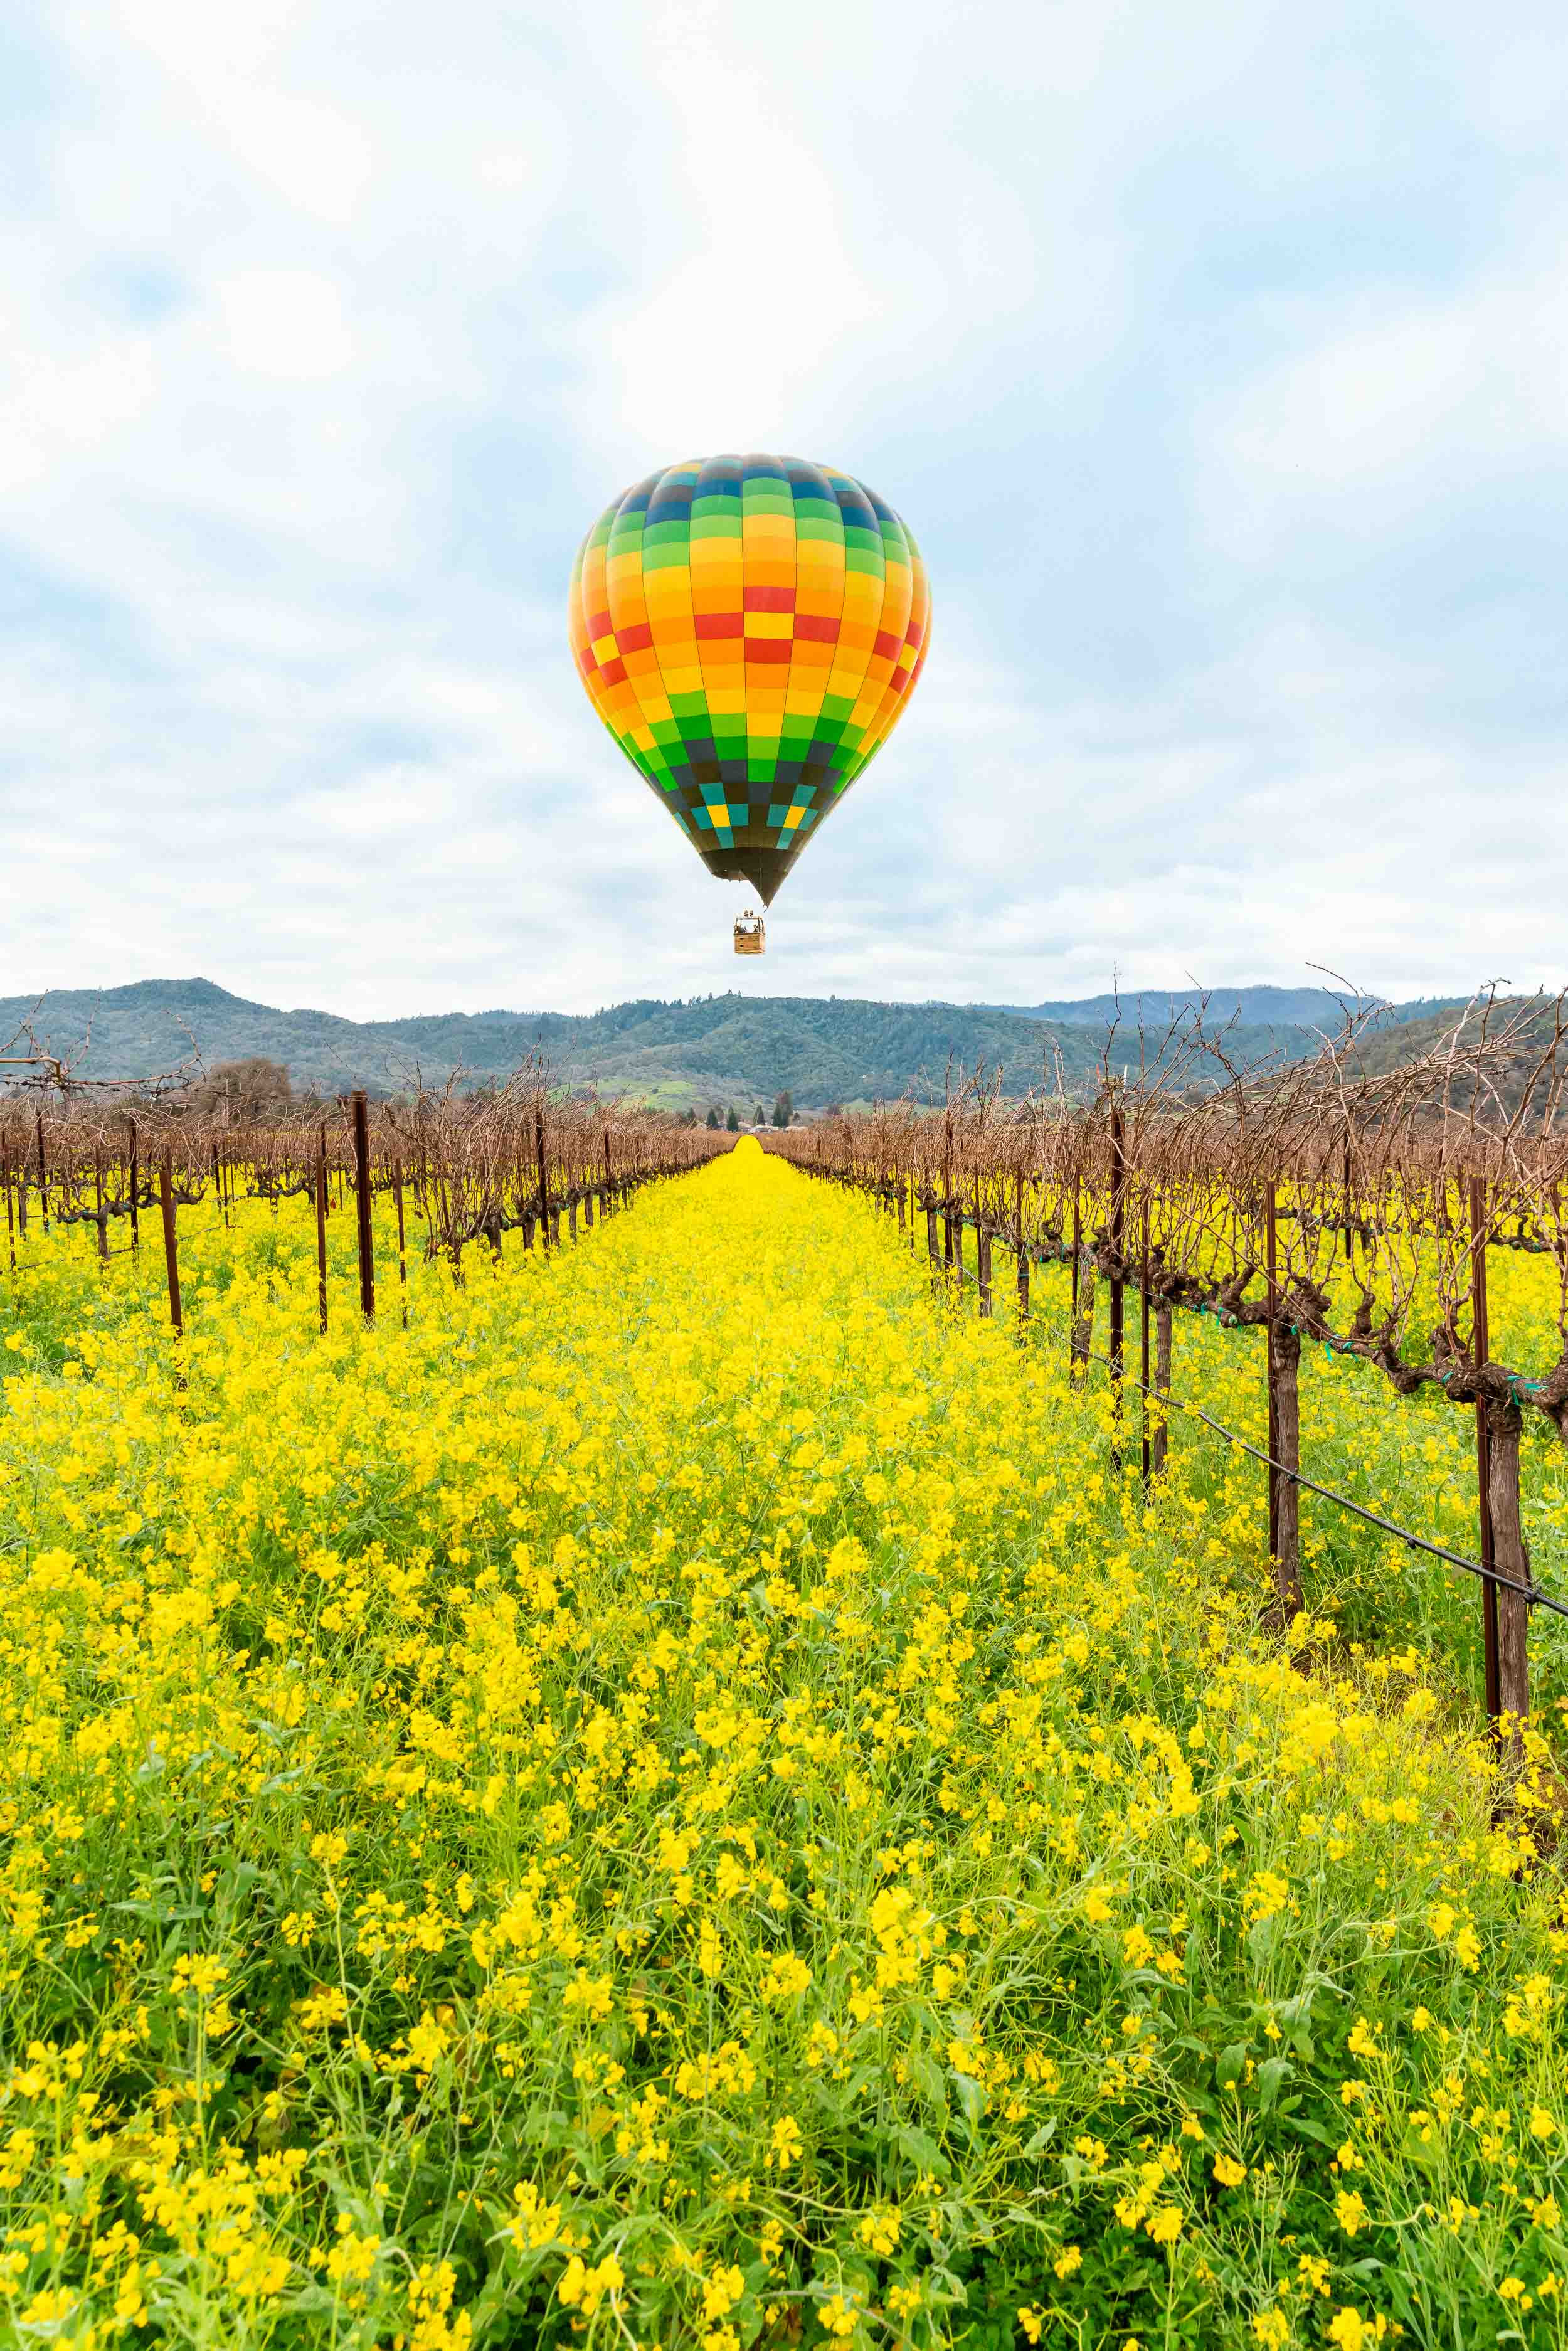 Hot air balloon ride in Napa Valley with mustard flowers in bloom for Visit Napa magazine.